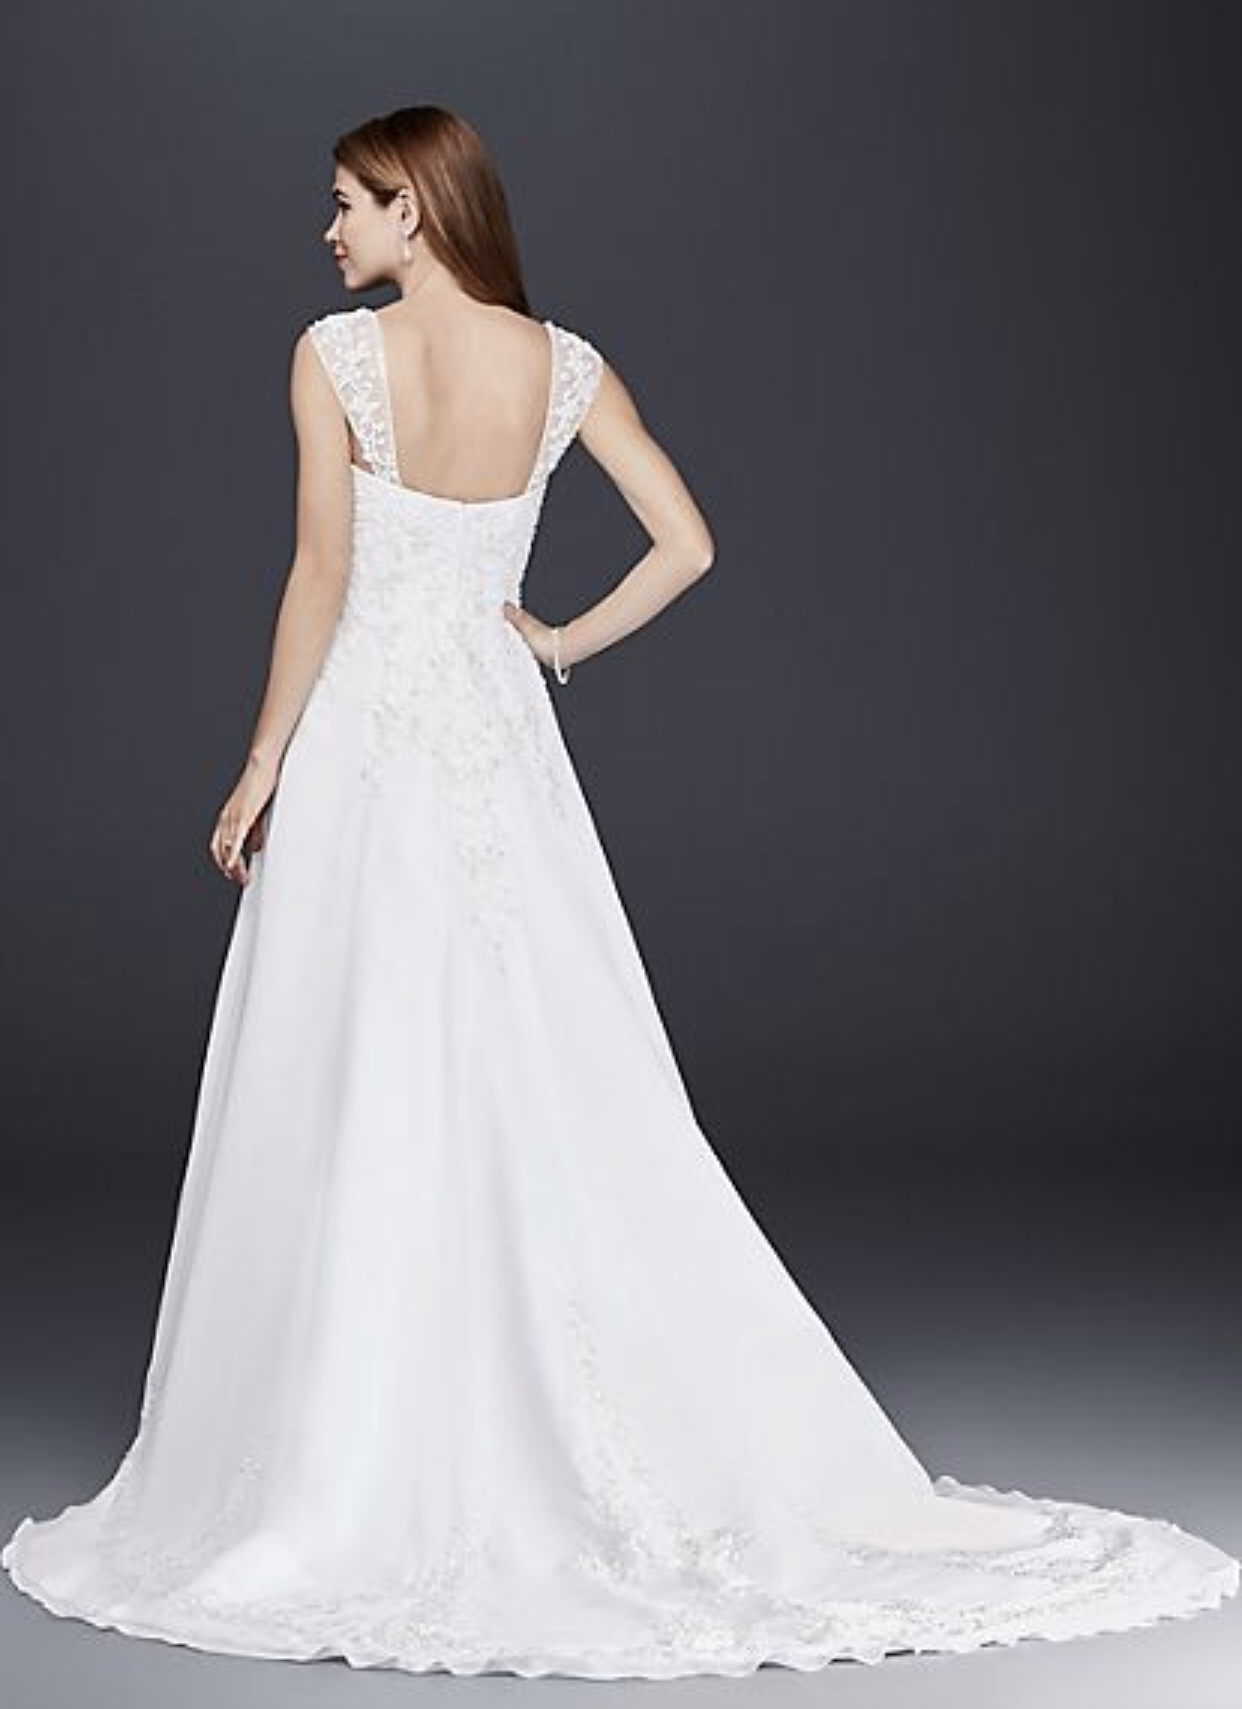 David's Bridal - A Line Chiffon Split Front Overlay Wedding Dress